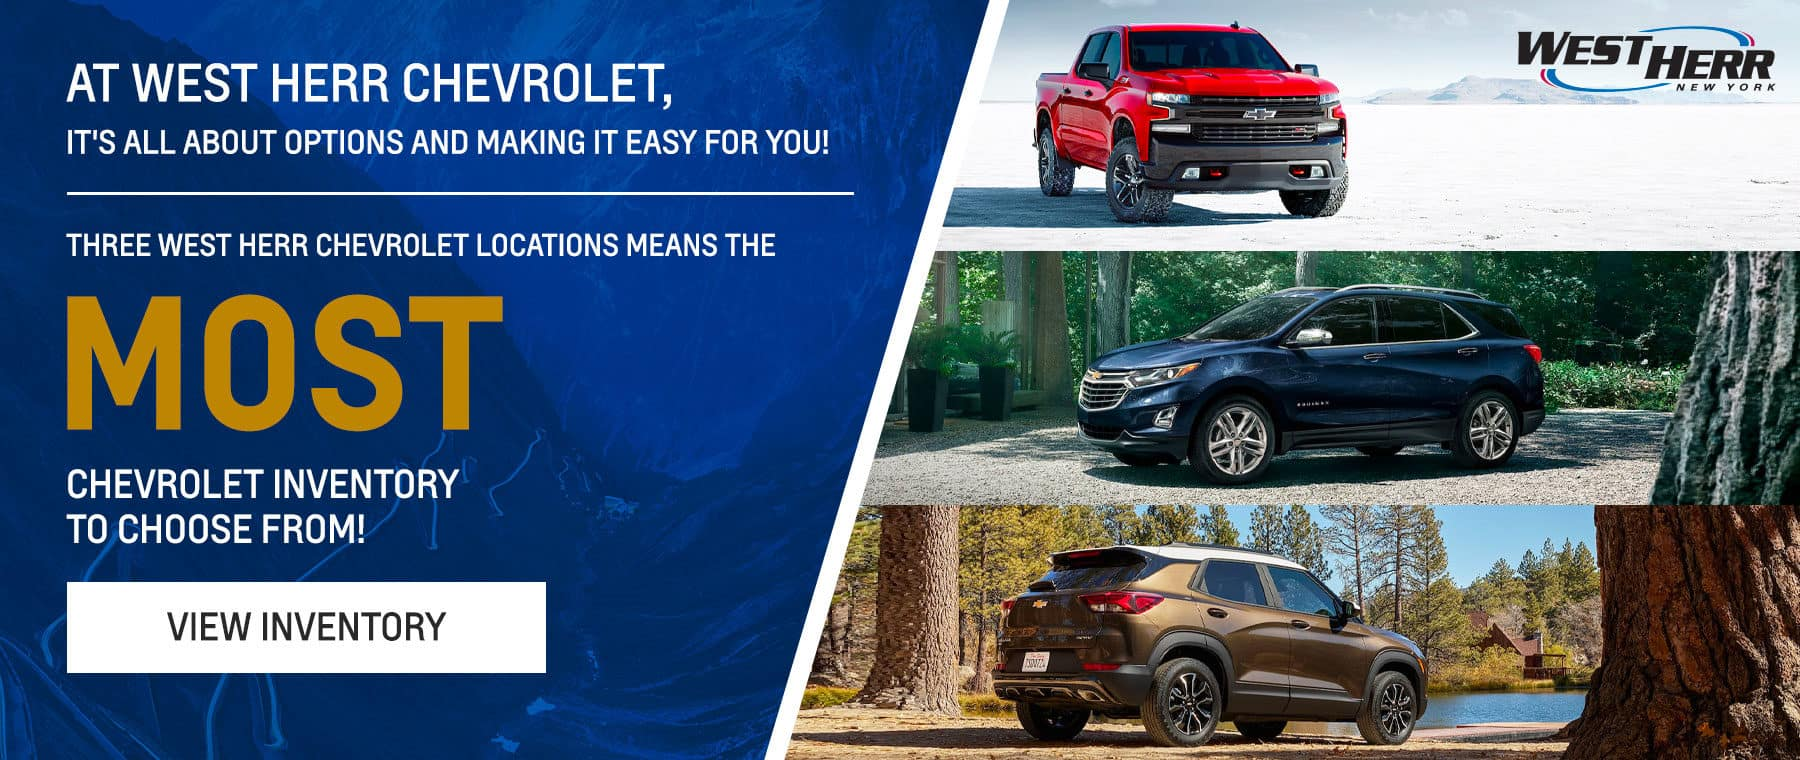 At West Herr Chevrolet, it's all about options and making it easy for you! Subtext: Three West Herr Chevrolet locations means the MOST Chevrolet inventory to choose from!